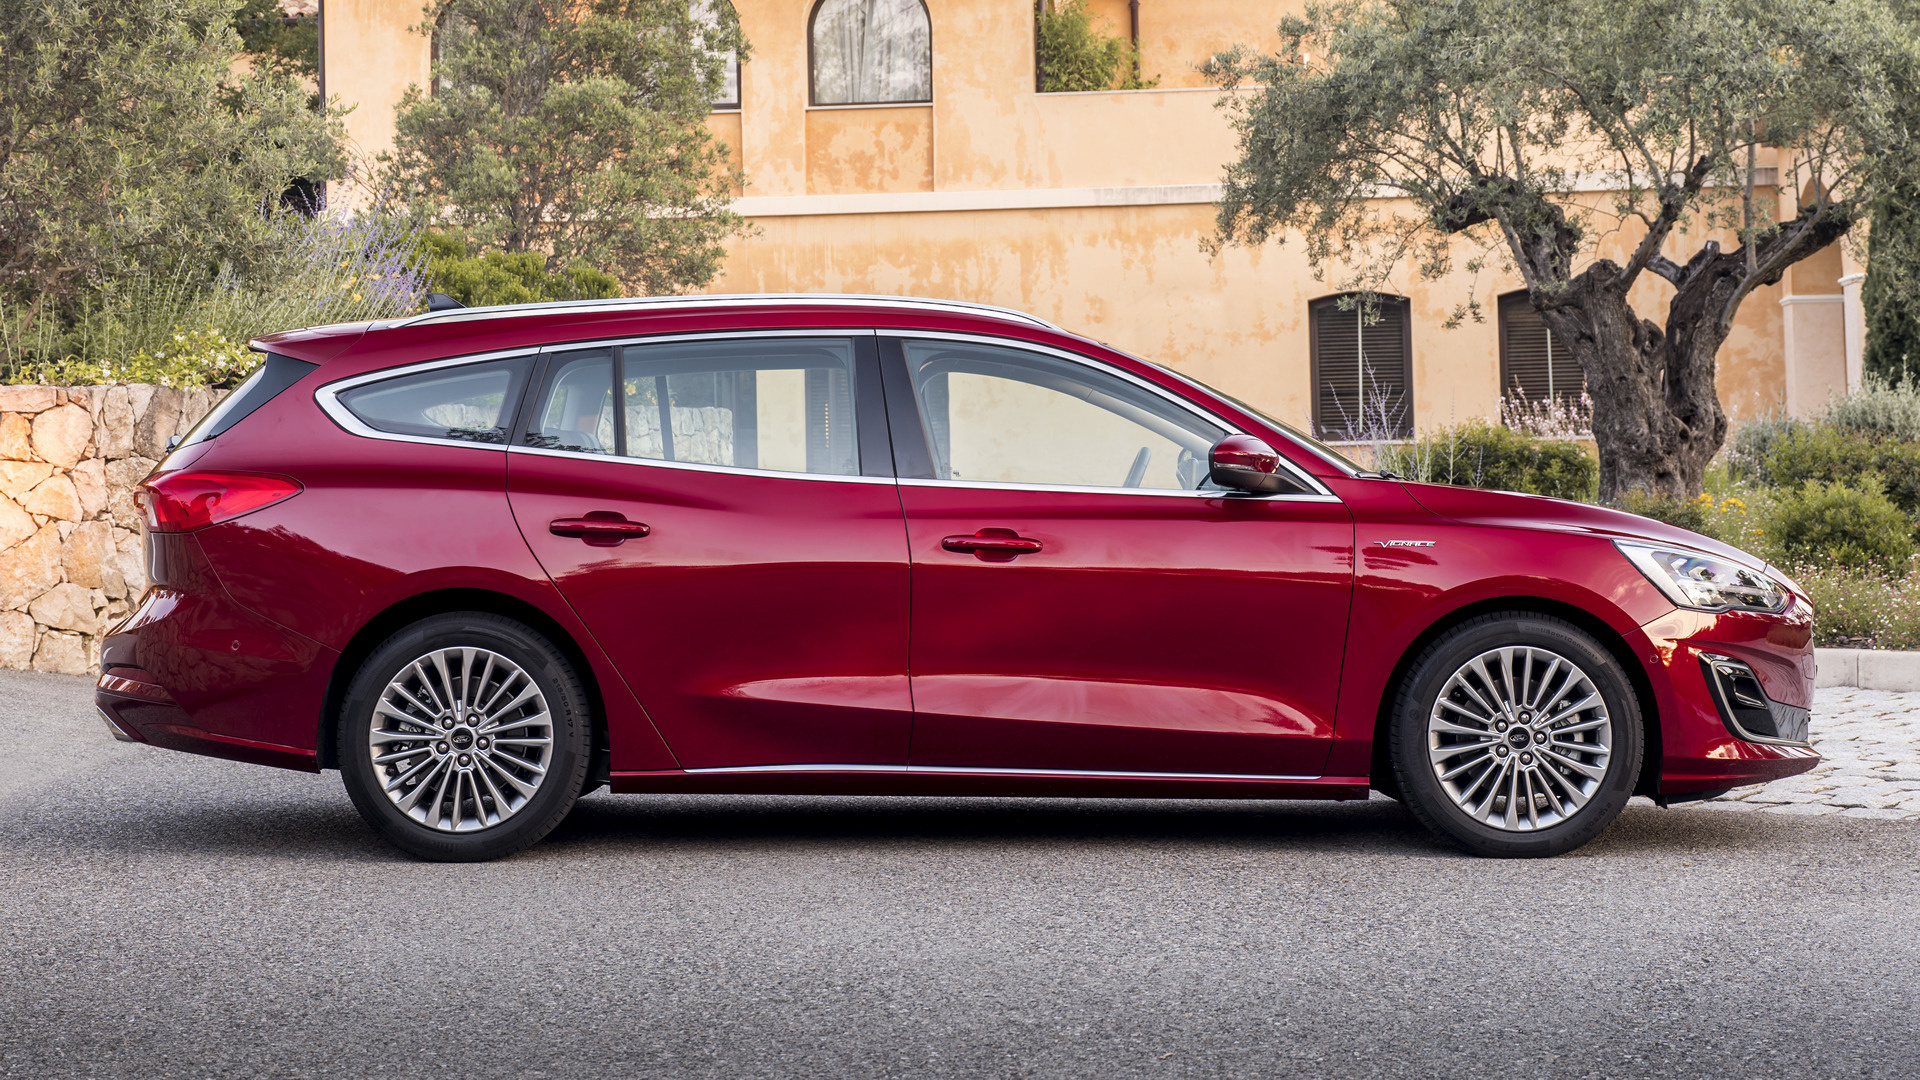 2018 ford focus vignale turnier wallpapers and hd images car pixel. Black Bedroom Furniture Sets. Home Design Ideas